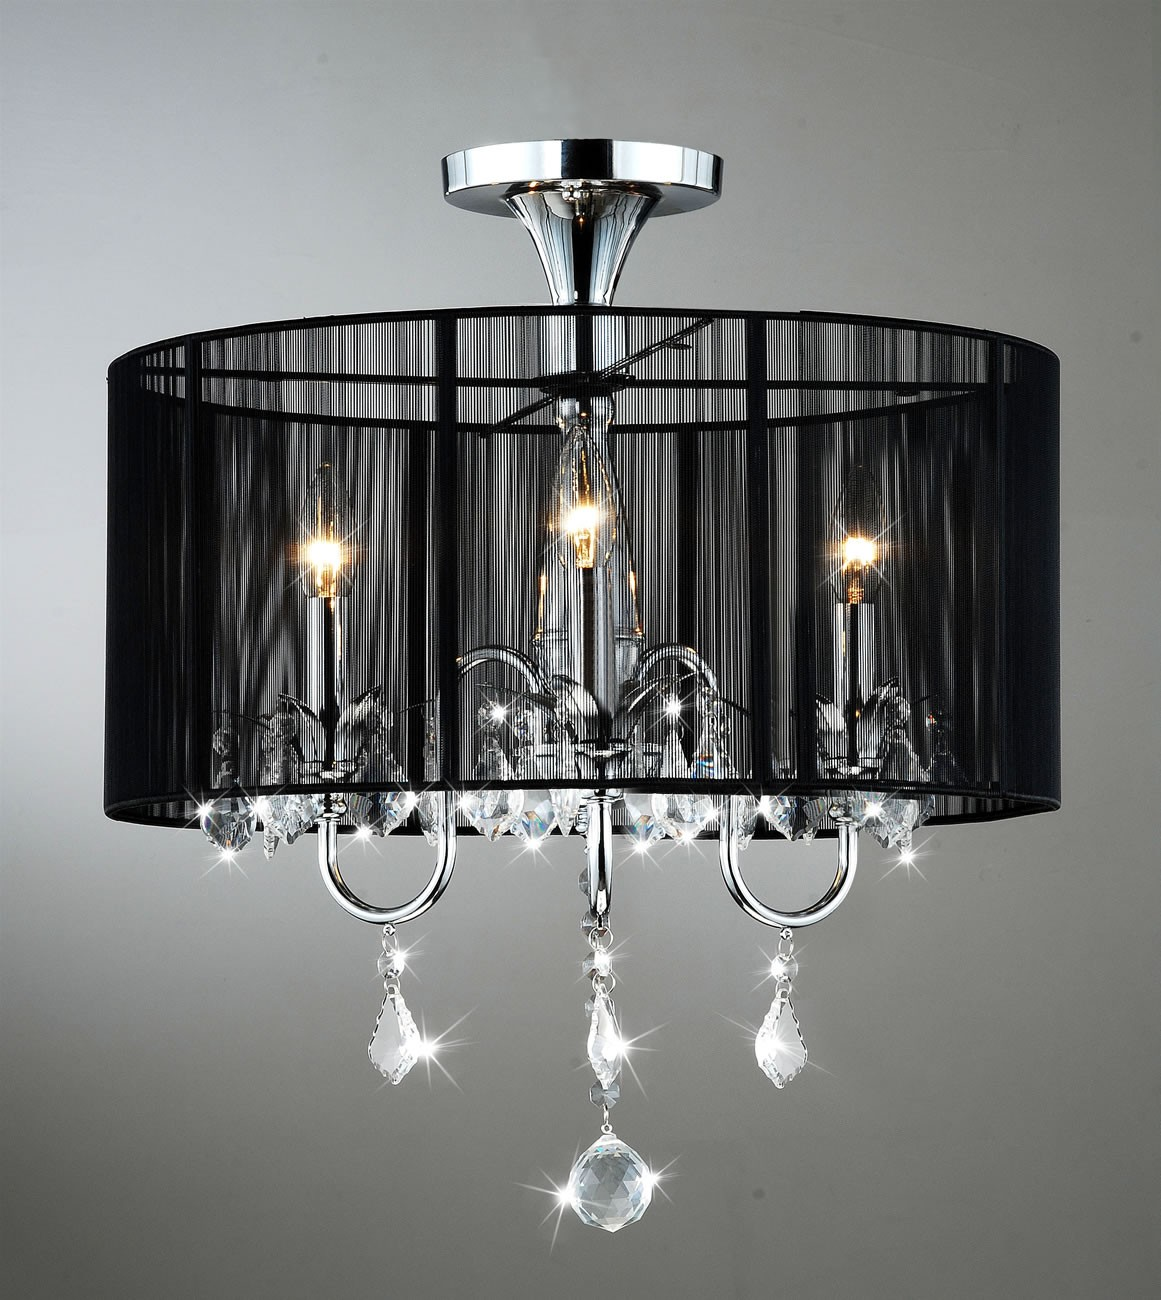 Aubree 3 lights black and chrome semi flush mount crystal chandelier aubree 3 lights black and chrome semi flush mount crystal chandelier 185w x aloadofball Gallery